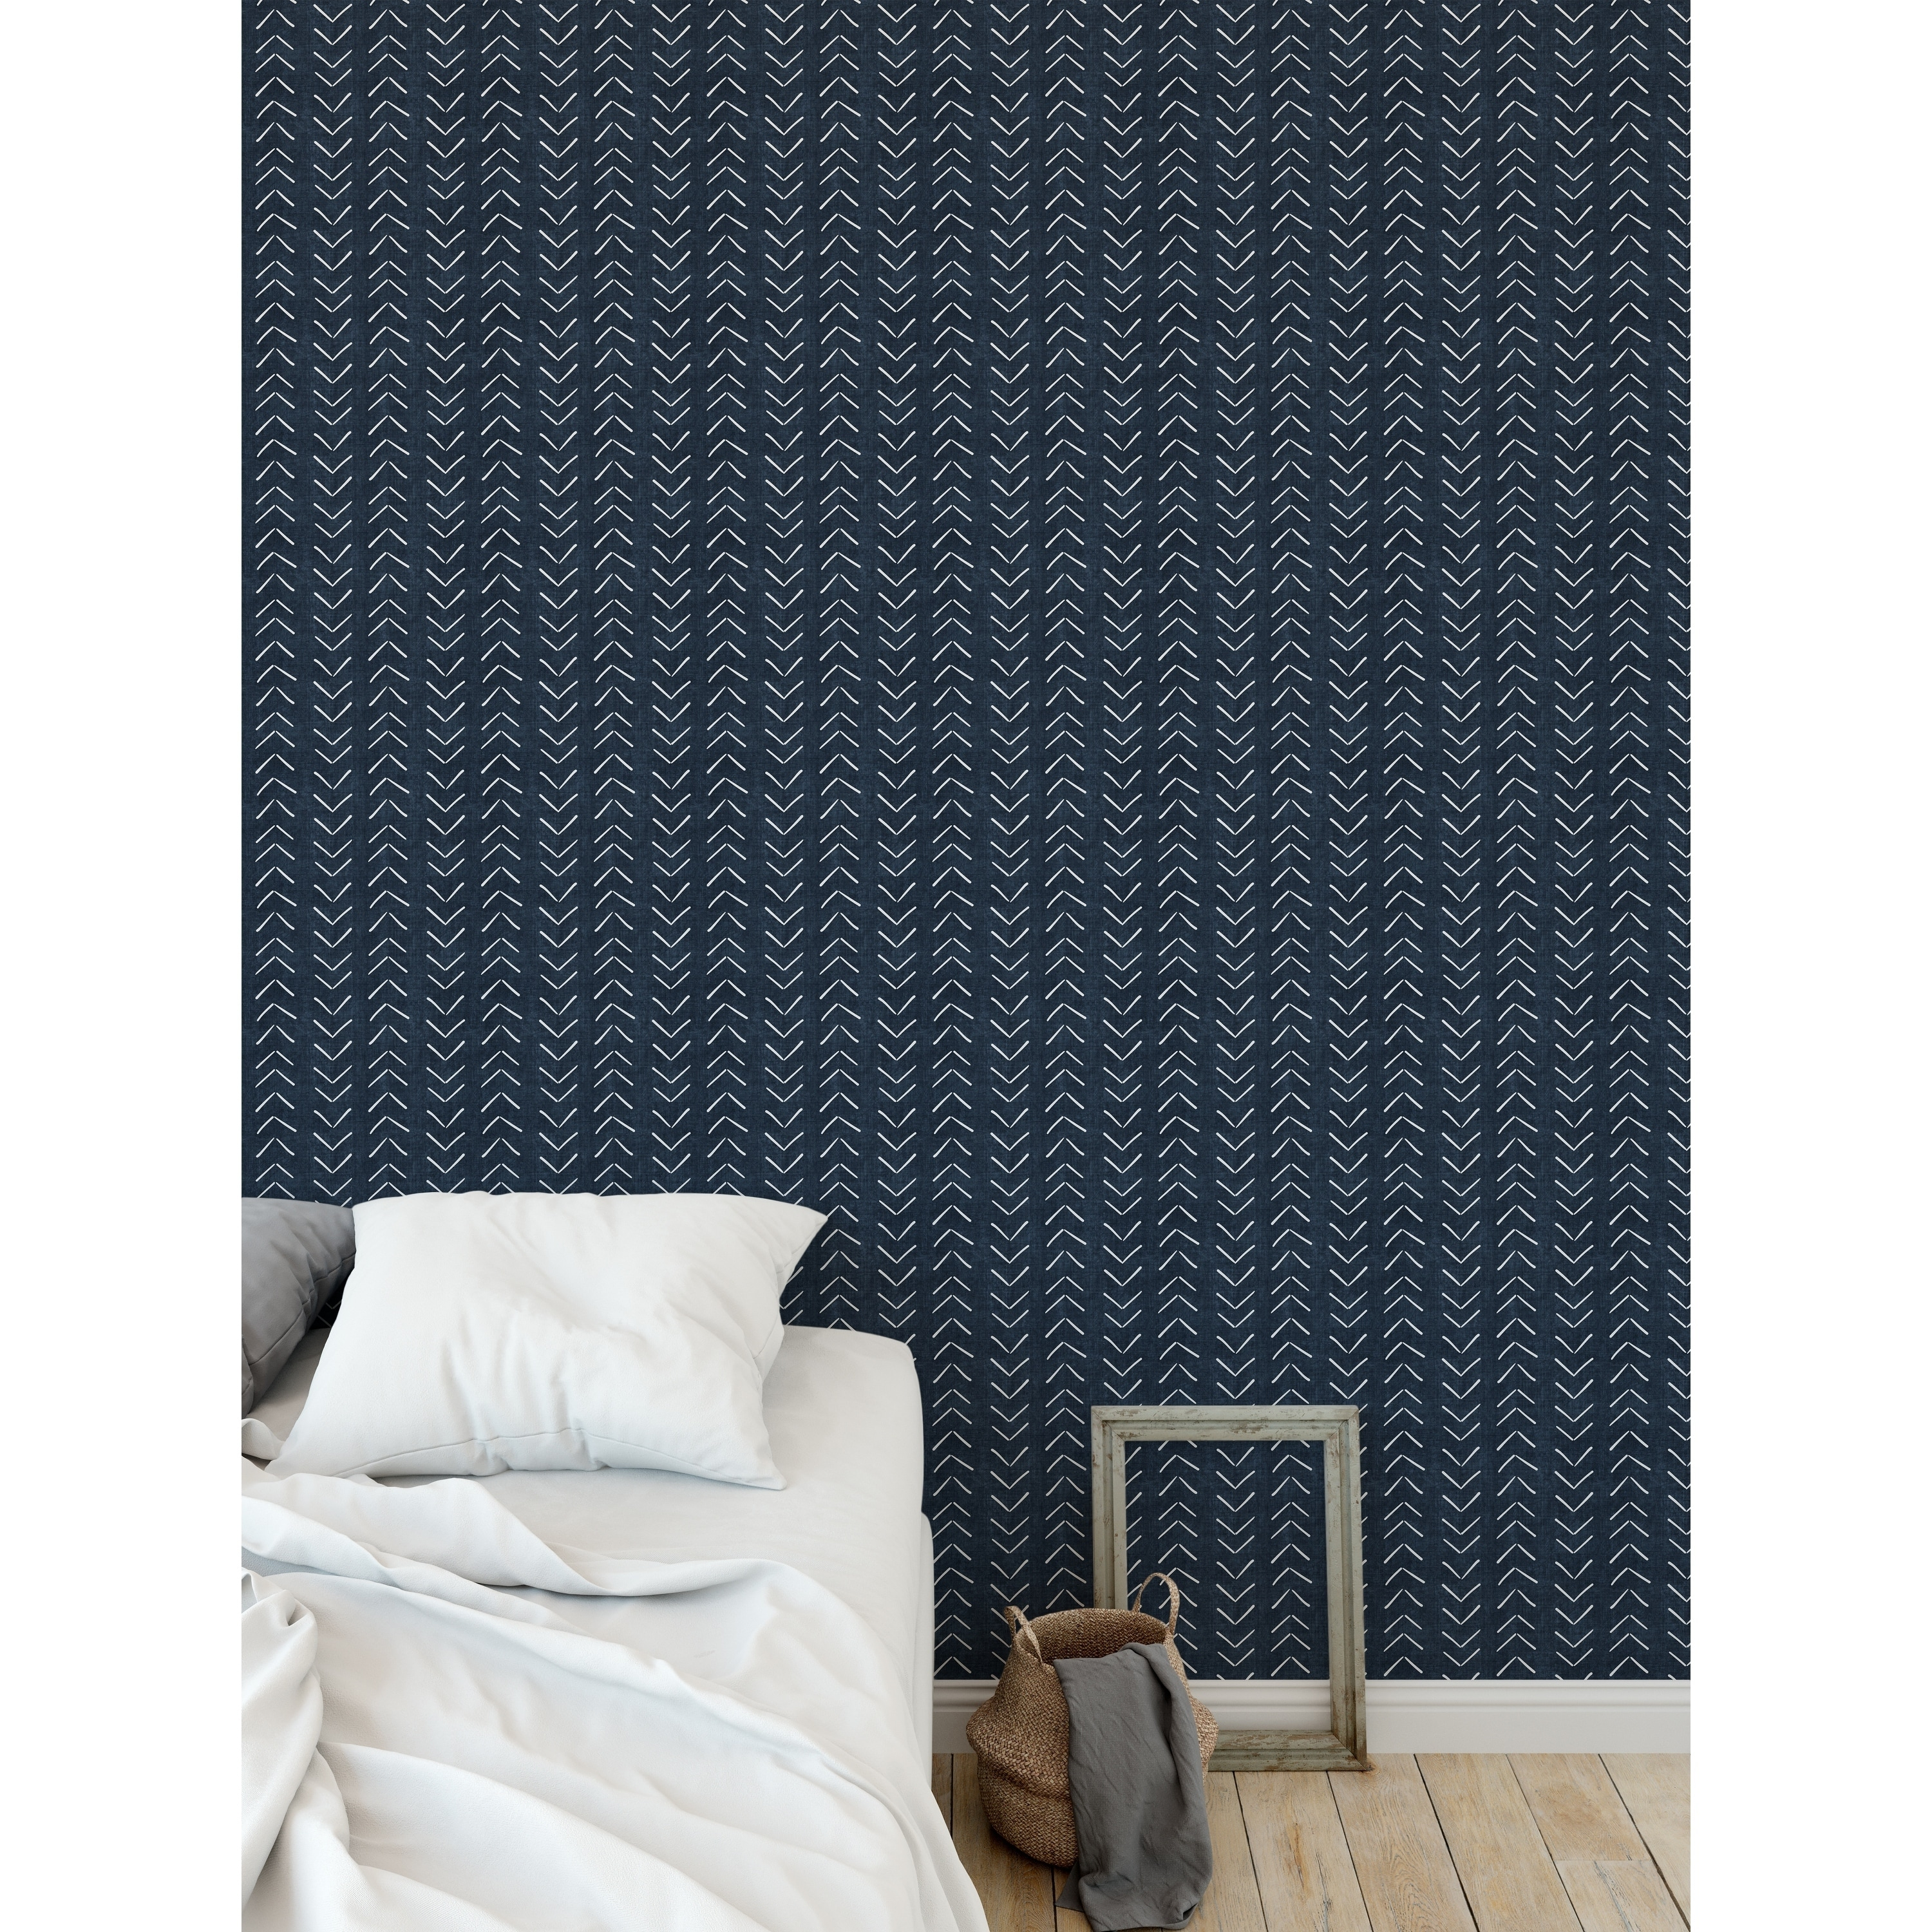 Shop Elle Decor Mudcloth Big Arrows Navy Peel And Stick Wallpaper By Kavka Designs Overstock 29342601